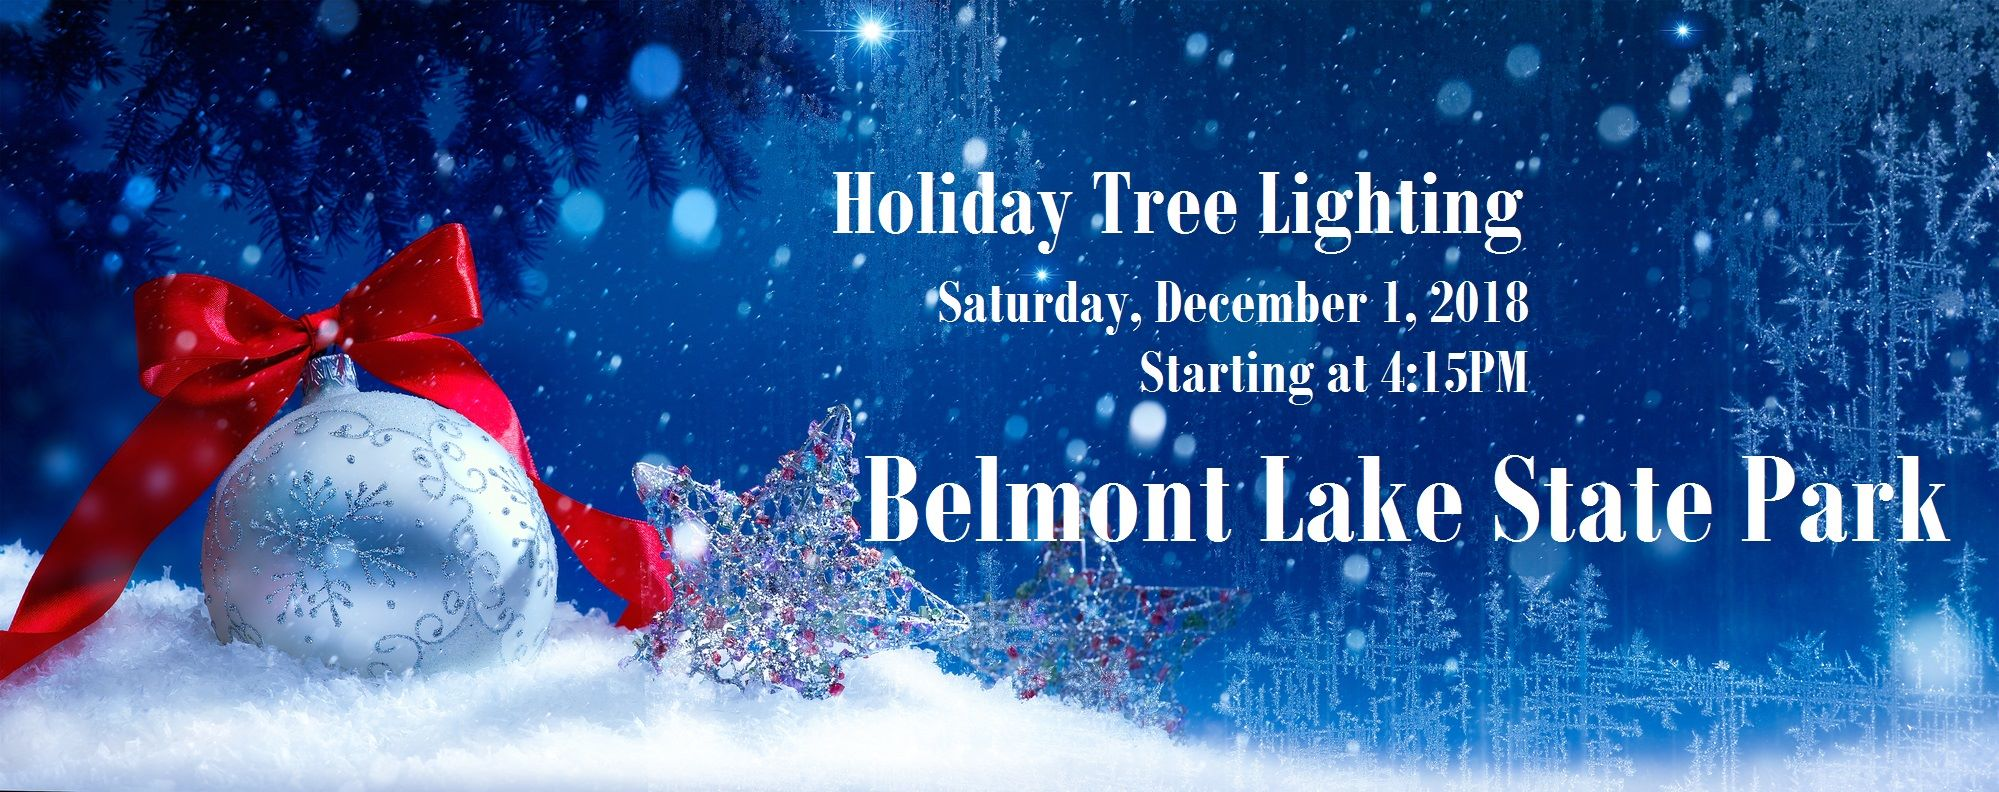 Belmont Lake State Park Tree Lighting Christmas Lights Li